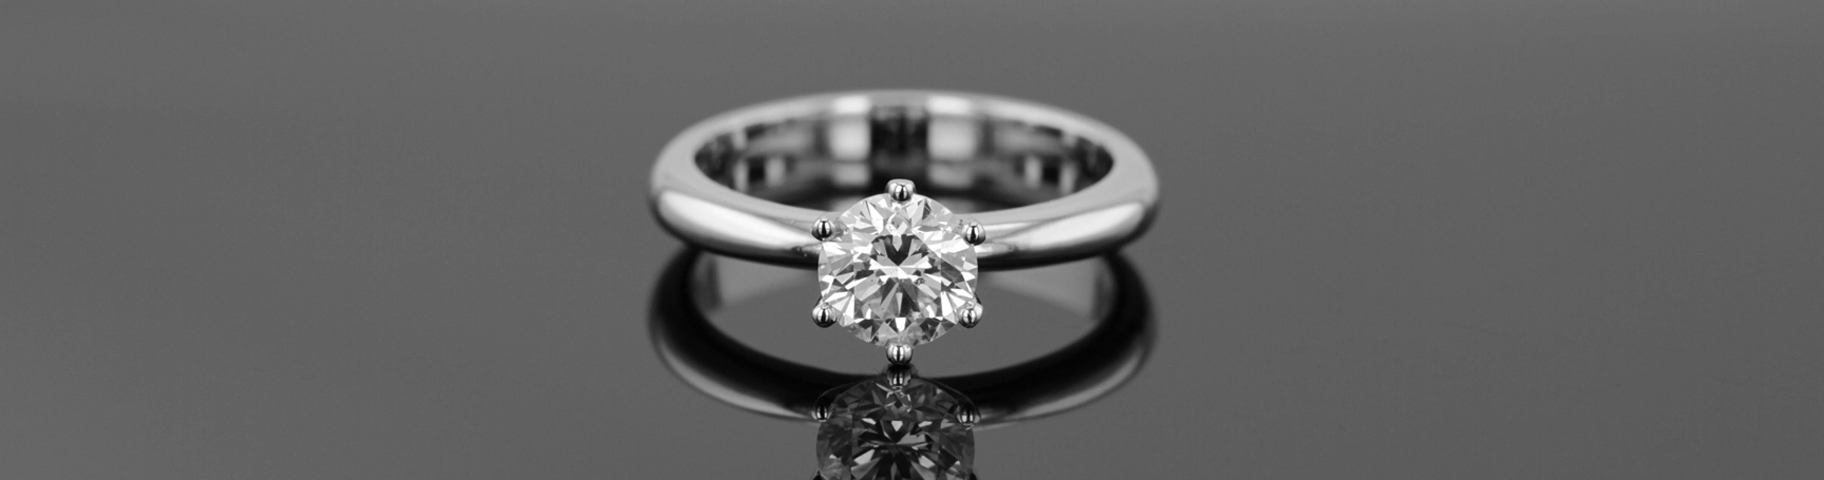 Wedding ring collection Mauritius